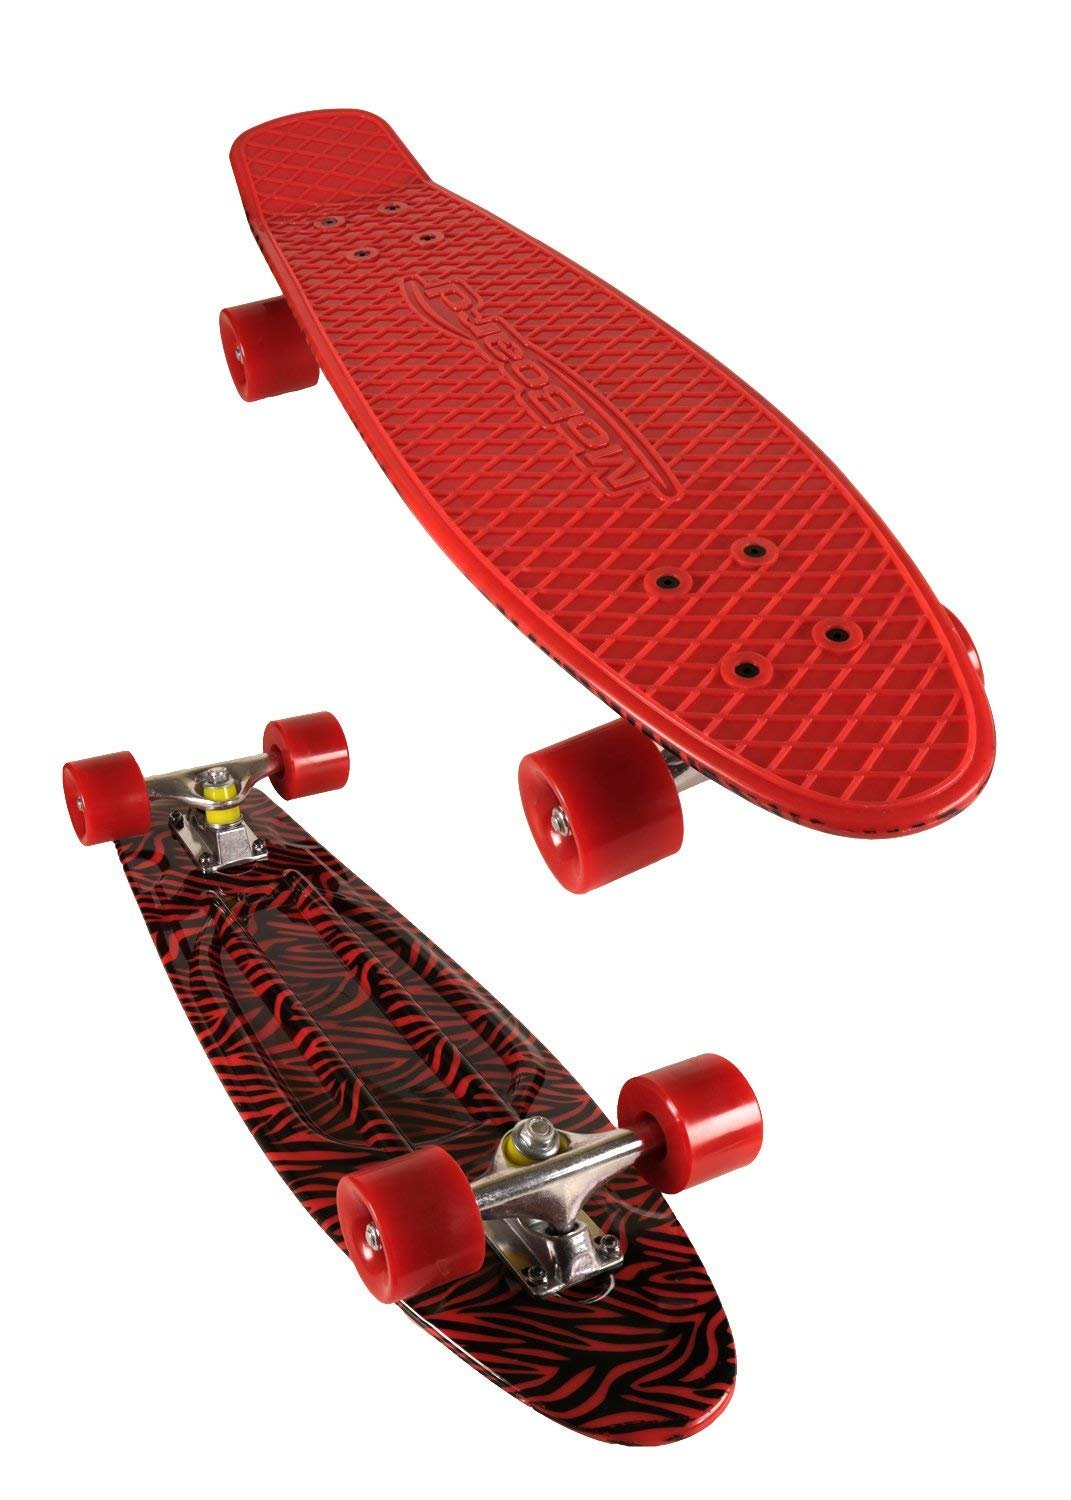 MoBoard 27'' Inch Graphic Complete Skateboard (Red/Graphic - Red)